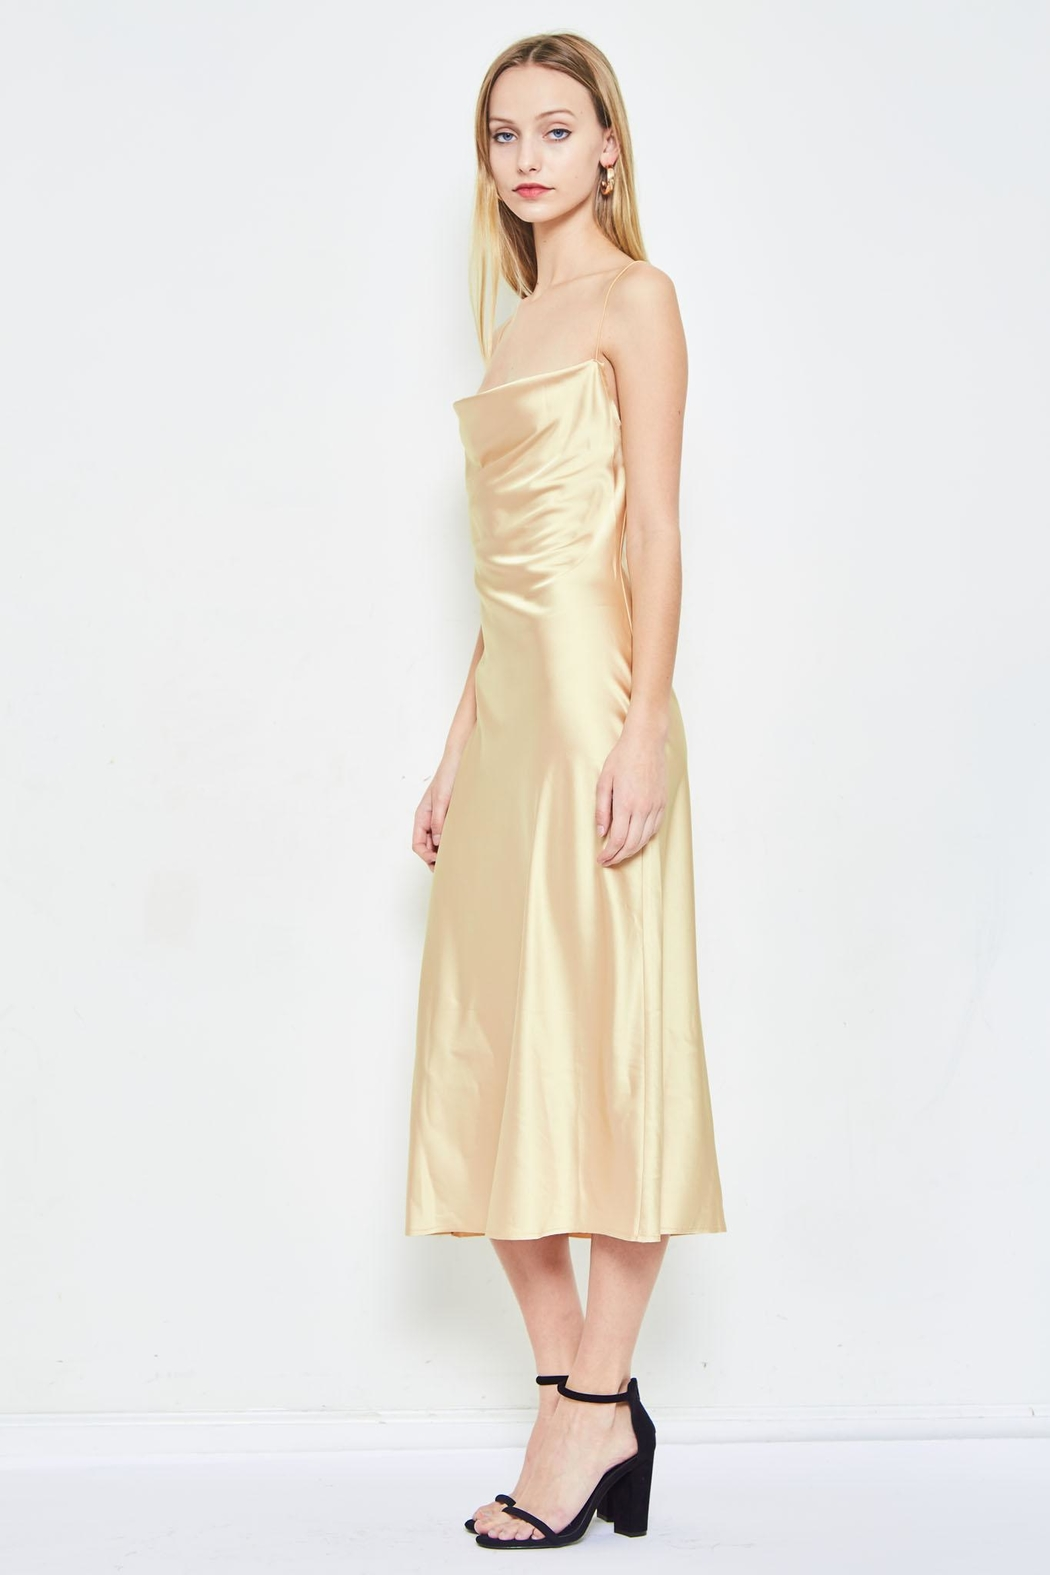 dabd1645811fc etophe studios Gold Slip Dress from Los Angeles by Chikas — Shoptiques